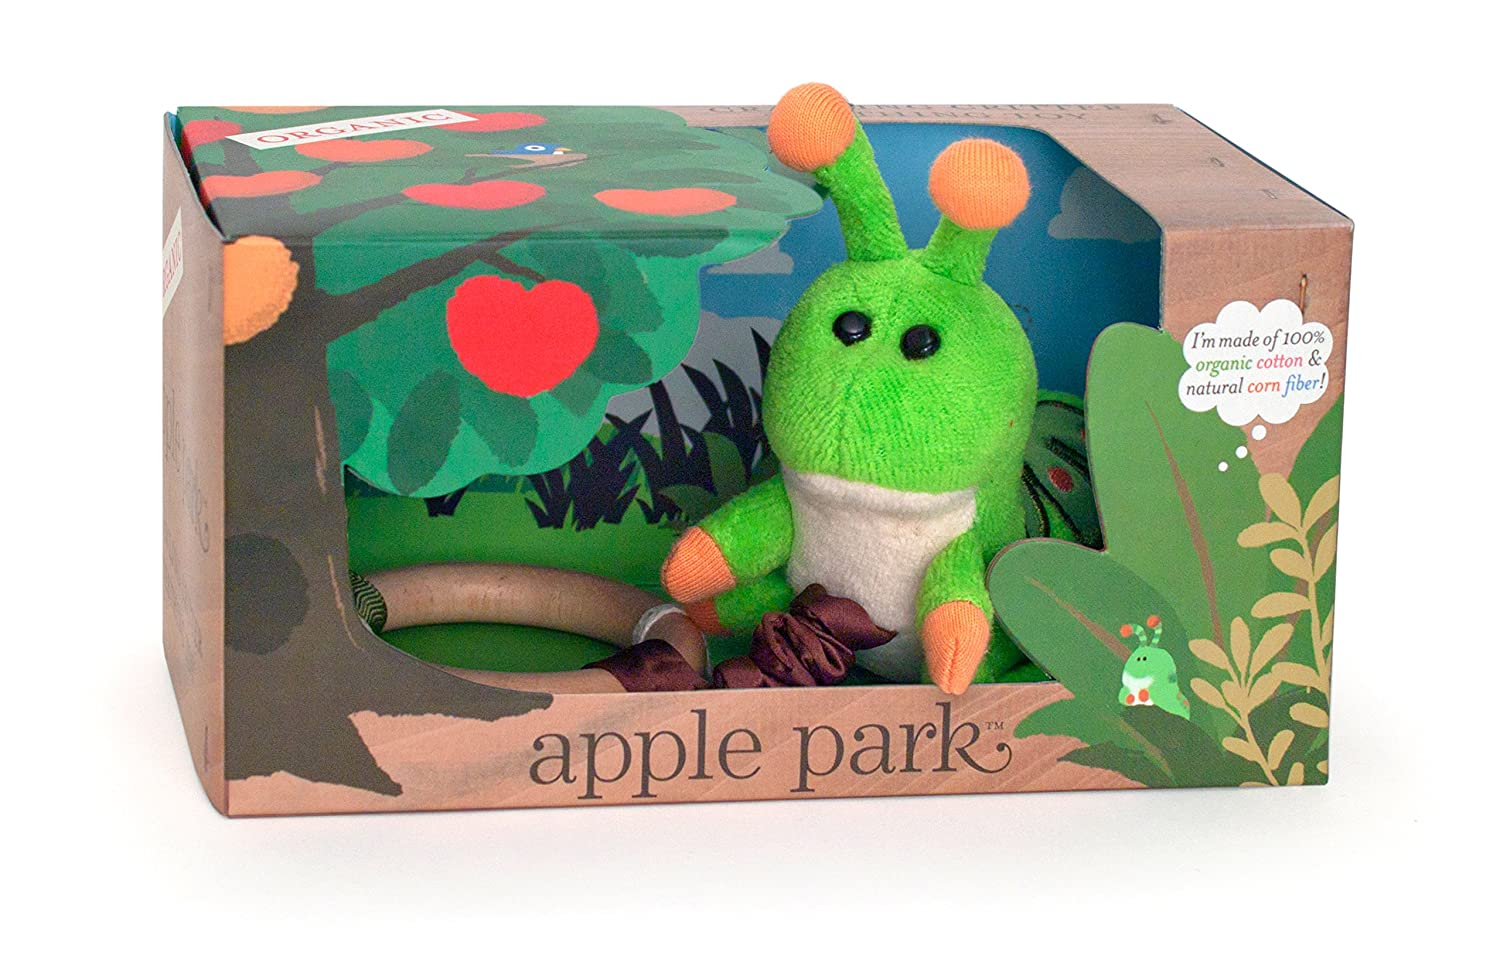 Apple Park Crawling Caterpillar Teething Baby Toy - Hypoallergenic, 100% Organic Cotton, Bamboo Ring